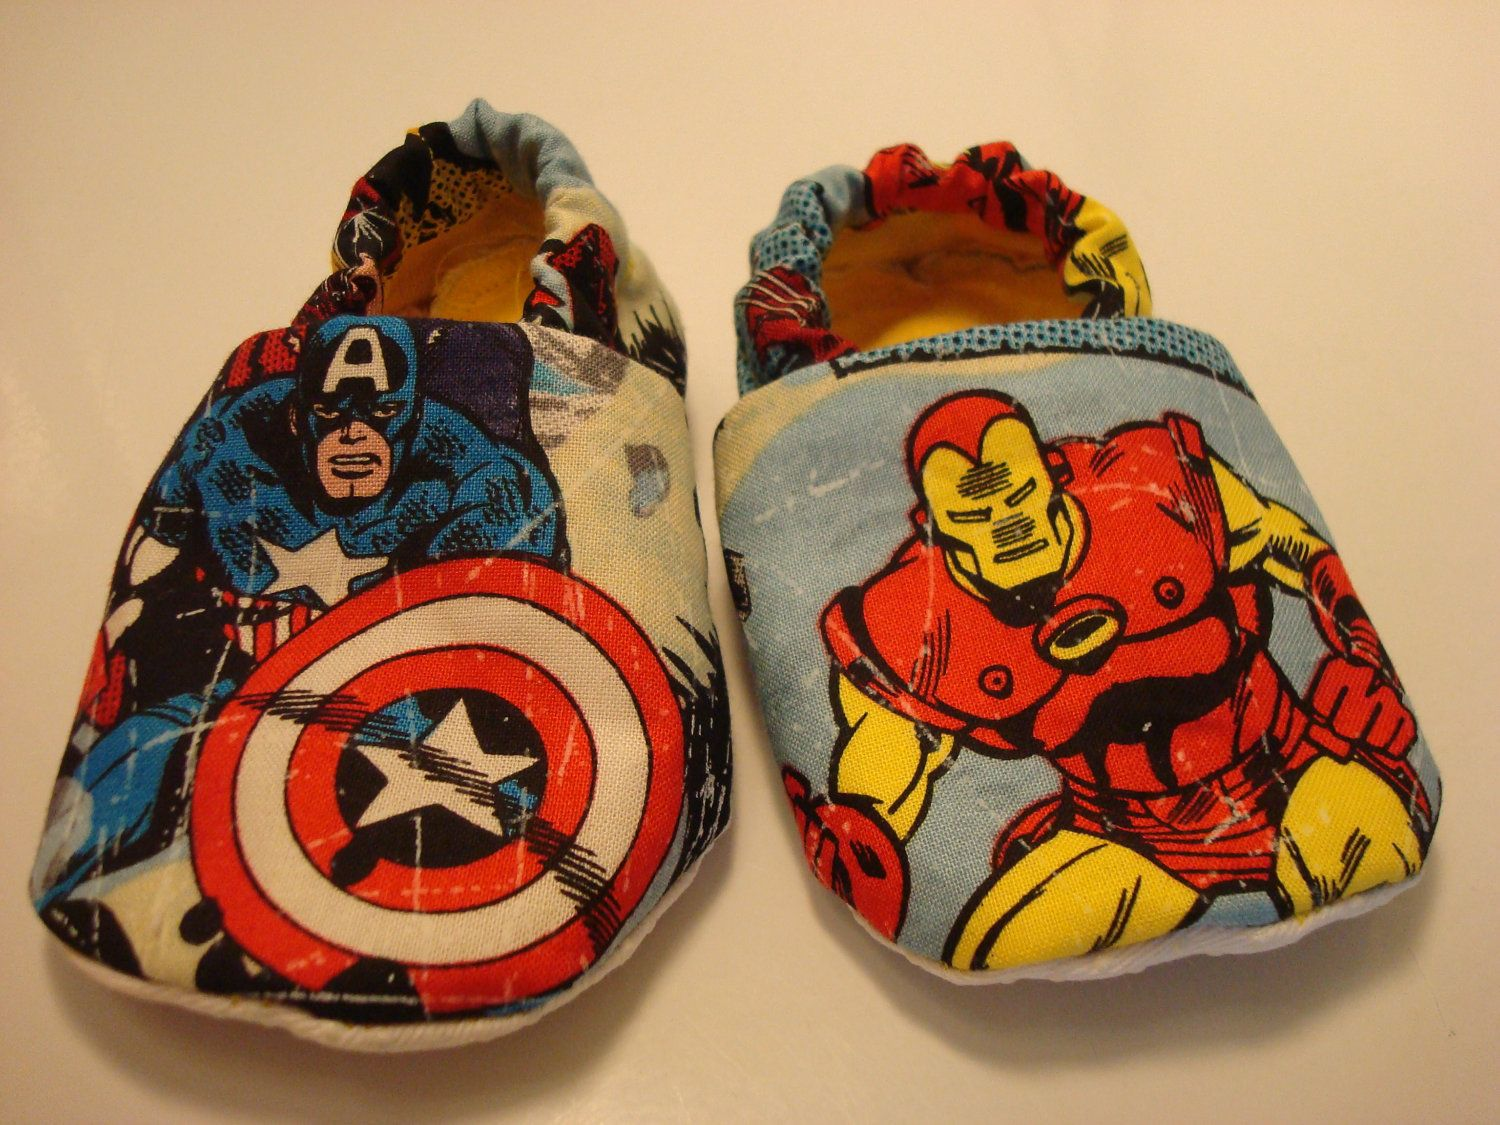 359402aaa2695 THE AVENGERS baby shoes (pick from) Iron Man, Spider-Man, Wolverine ...